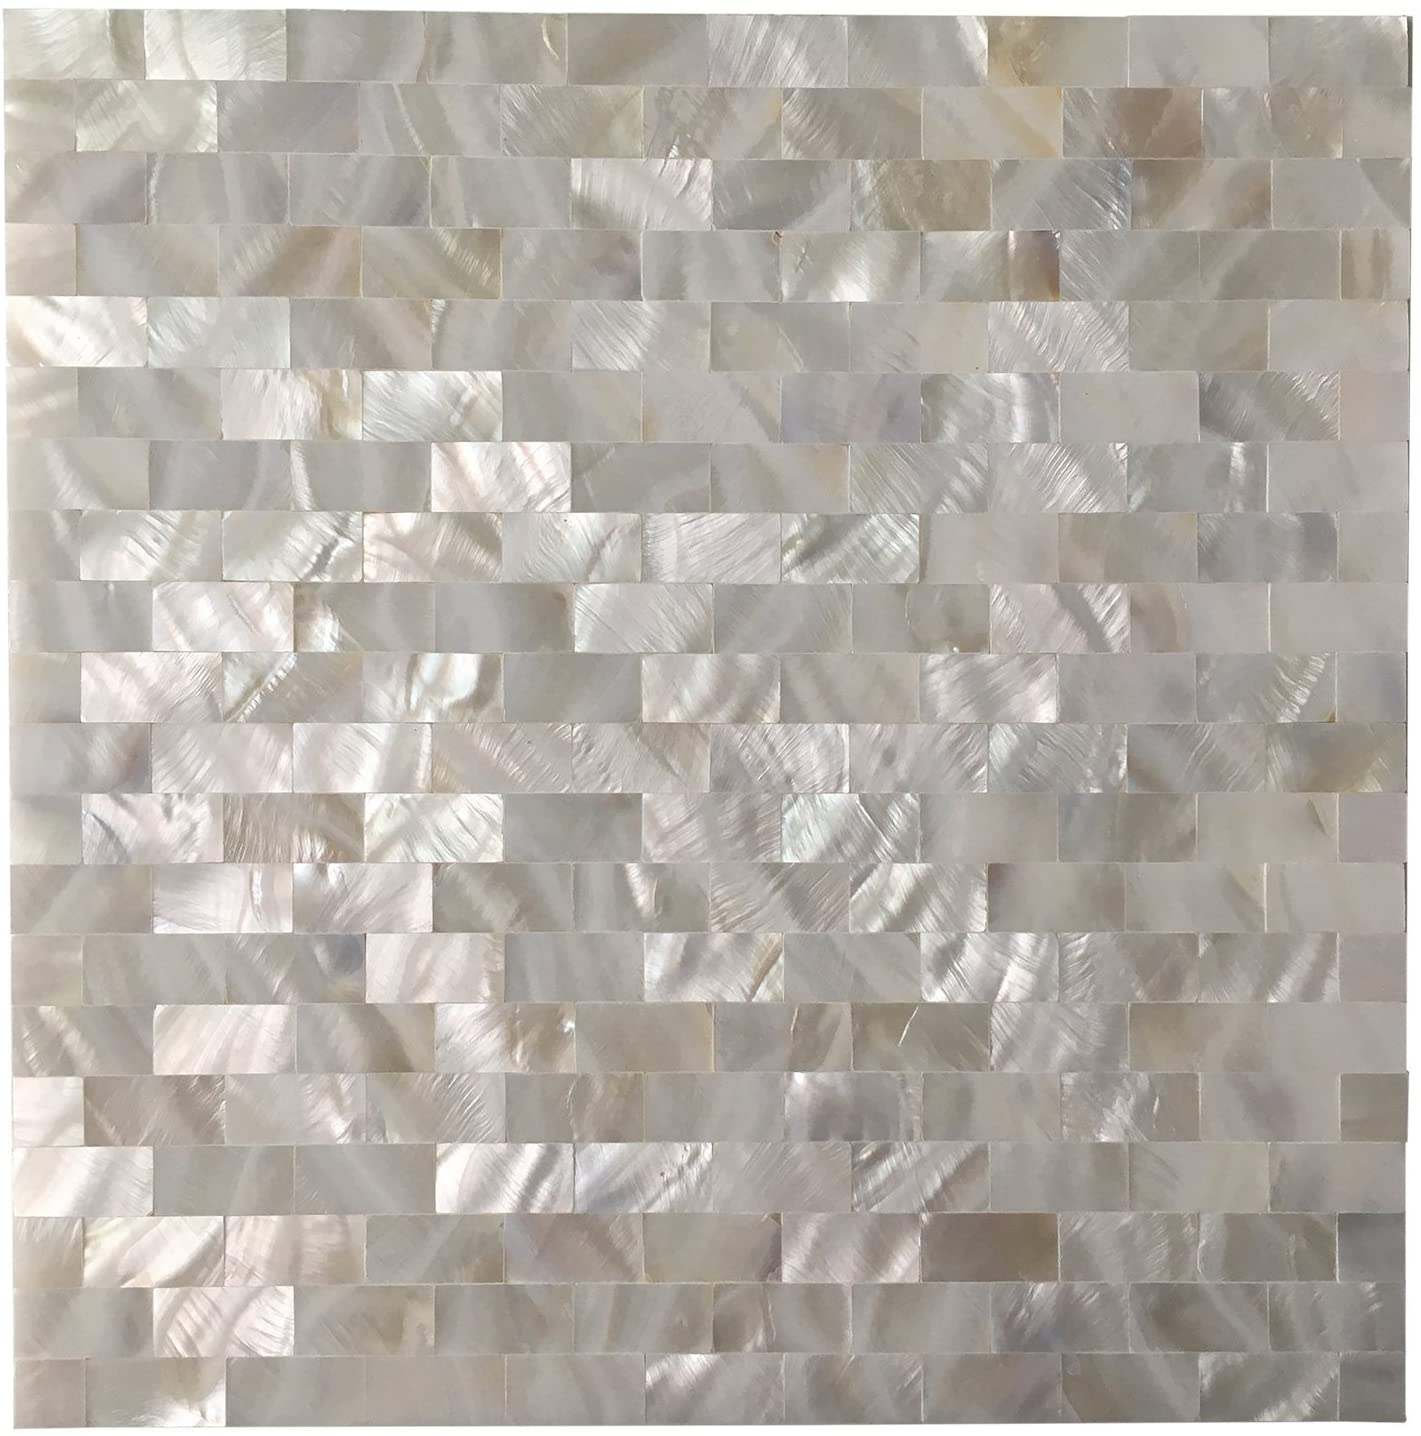 A18202 - 6-Pack Mother of Pearl Shell Tile for Kitchen Backsplashes / Shower Wall, 12